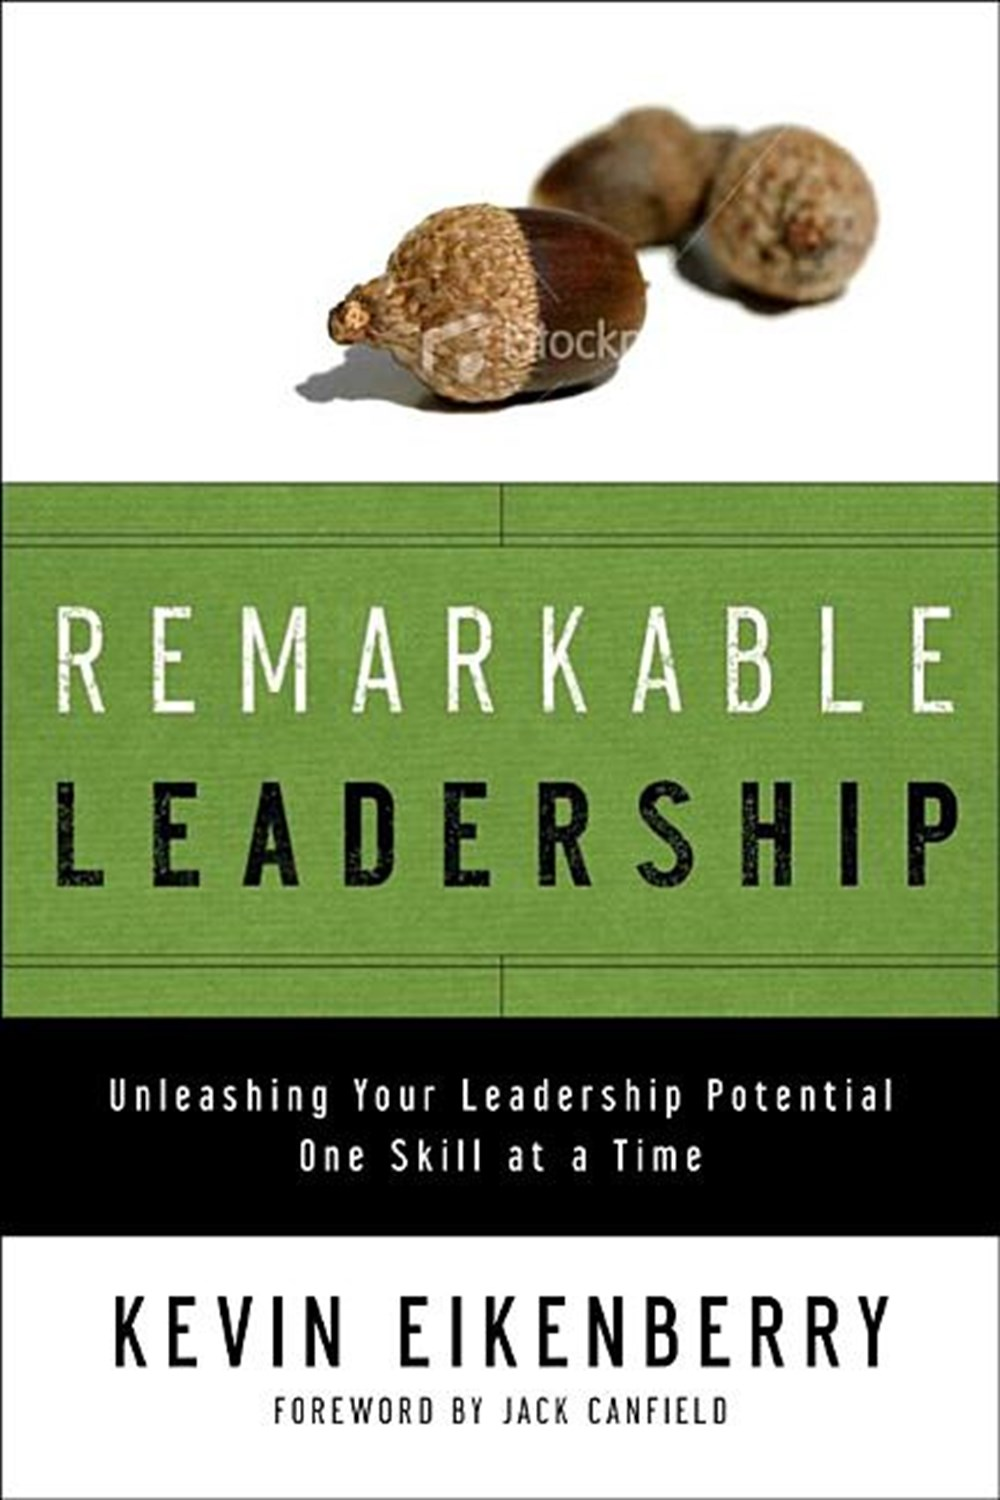 Remarkable Leadership Unleashing Your Leadership Potential One Skill at a Time